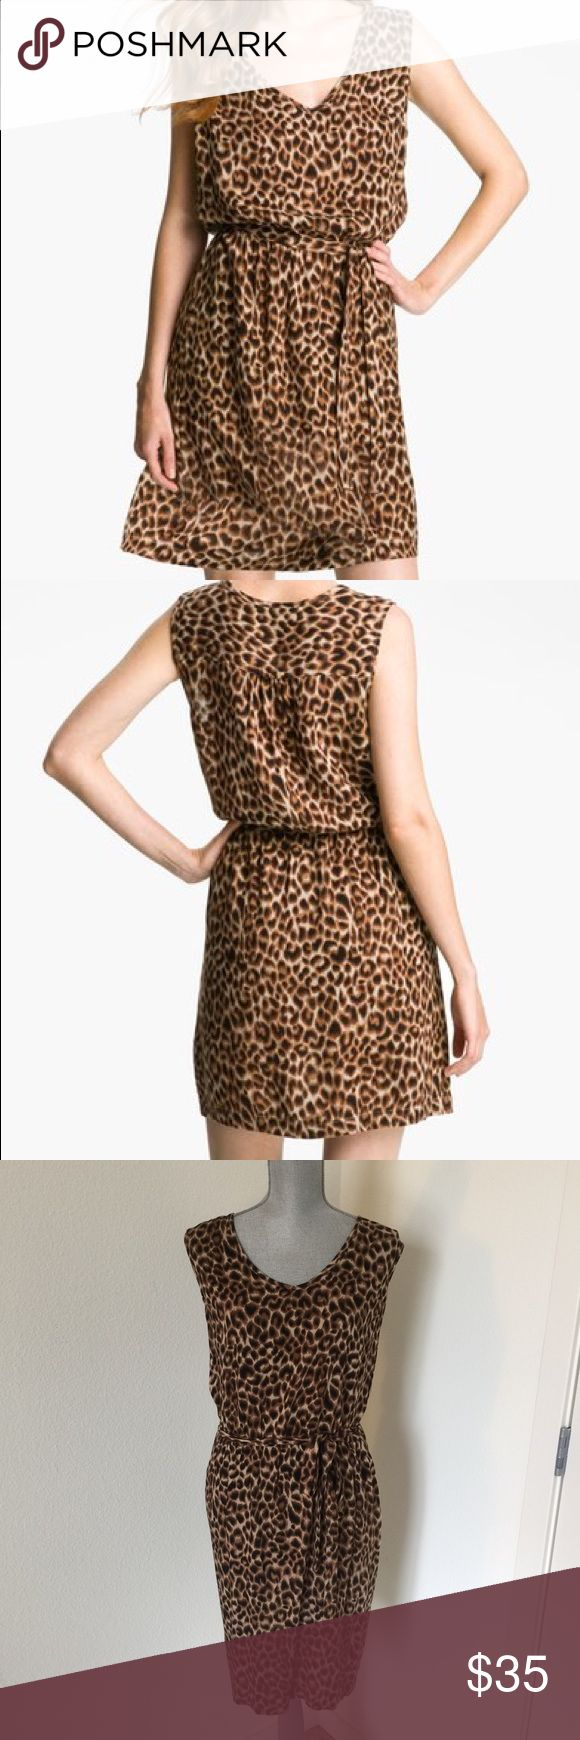 Lucky Cheetah Dress - Size XL Lucky Brand 'Brinkley-Cheetah' Dress. Size XL. Slips over head (no zipper/buttons), blousy V-neck bodice and tie belt wrapping the waist. The waist is elastic (Note: first 2 pictures are from advertisement, other pics are of dress for sale). Lucky Brand Dresses